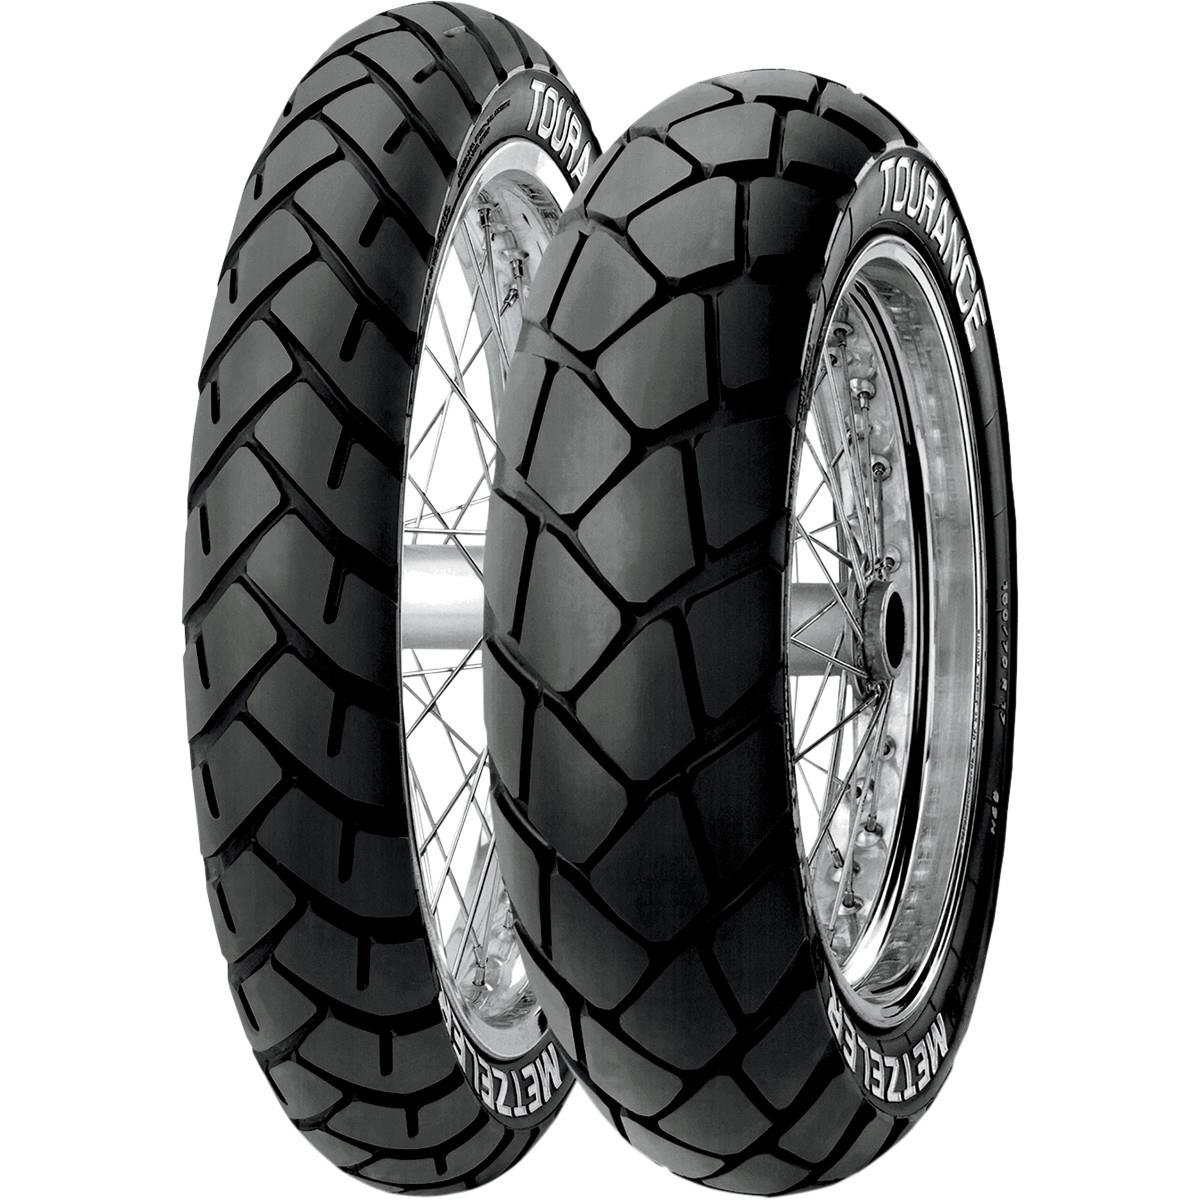 Metzeler Tourance Tire - Front - 90/90-21 , Position: Front, Load Rating: 54, Speed Rating: H, Tire Size: 90/90-21, Rim Size: 21, Tire Type: Dual Sport, Tire Application: All-Terrain 1012600